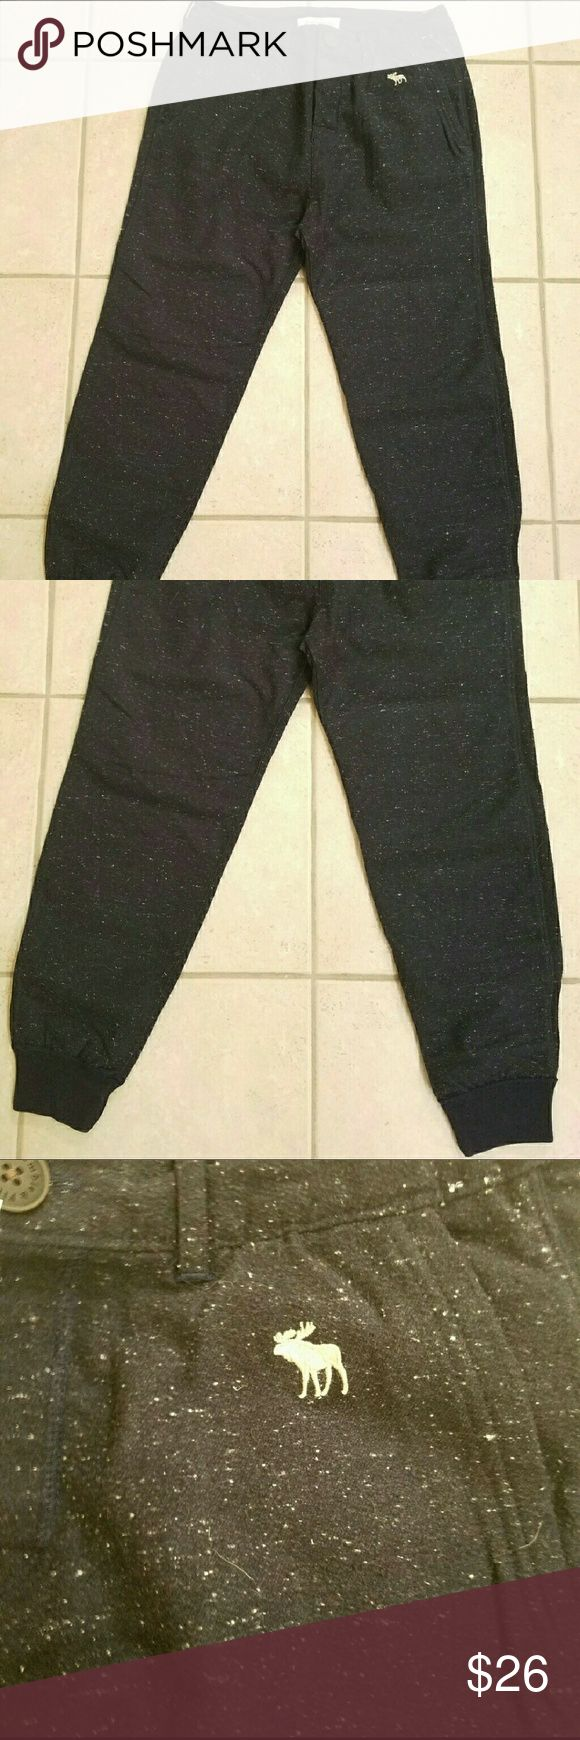 "Abercrombie and Fitch Mens Jogger pants NWT NWT mens joggers-Size Small- dark blue with white specs. These are not sweatpants or jeans, they are a dressier type/material. Measurement: Top of waist to end if cuff/pant is approximately 35"" Abercrombie & Fitch Pants Sweatpants & Joggers"